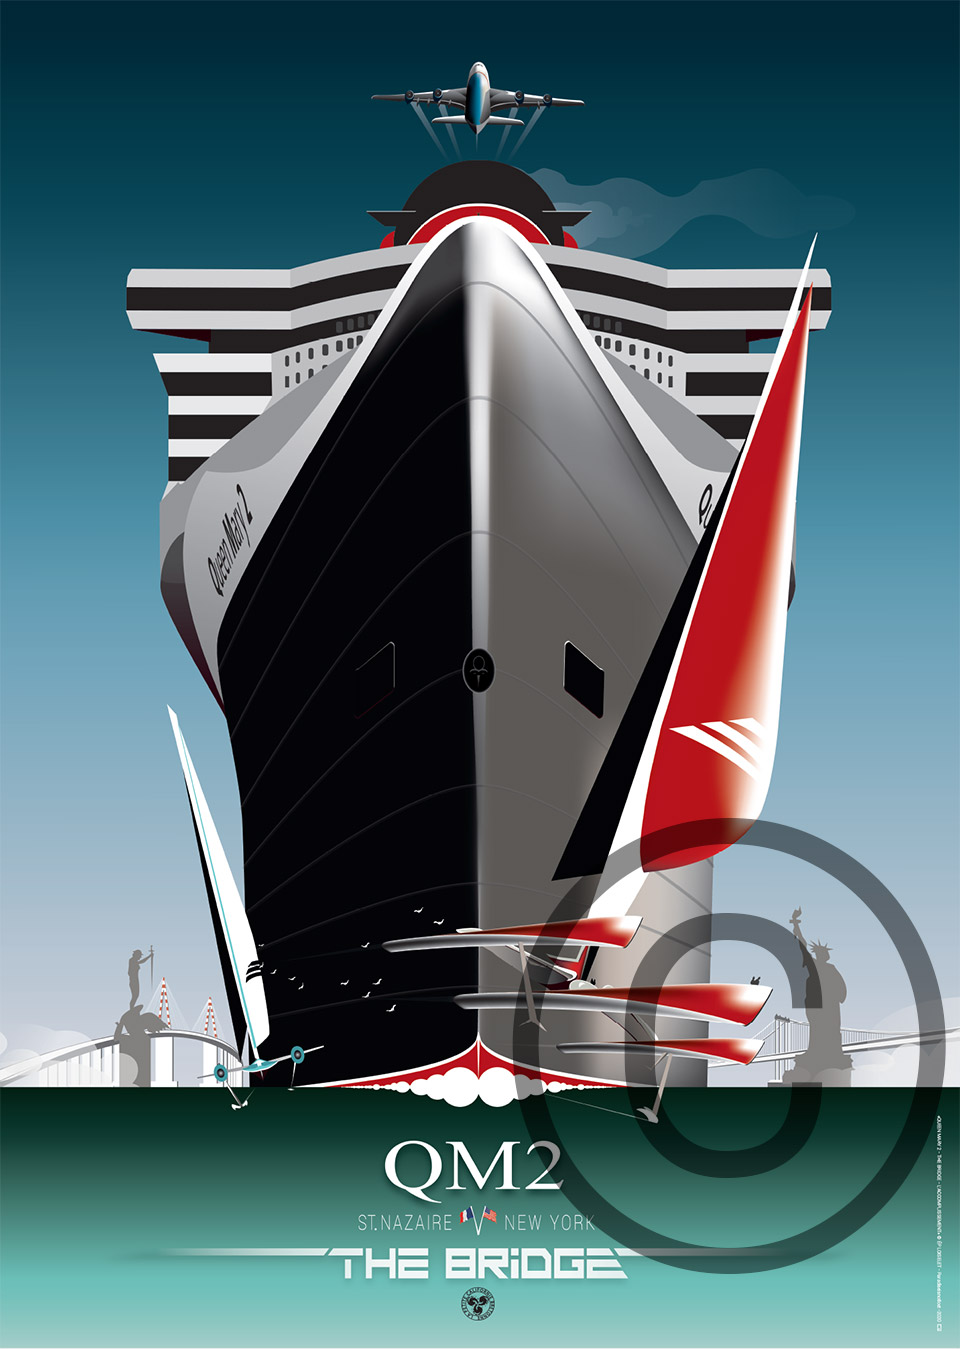 Affiche Queen Mary 2 Saint-Nazaire New York The Bridge